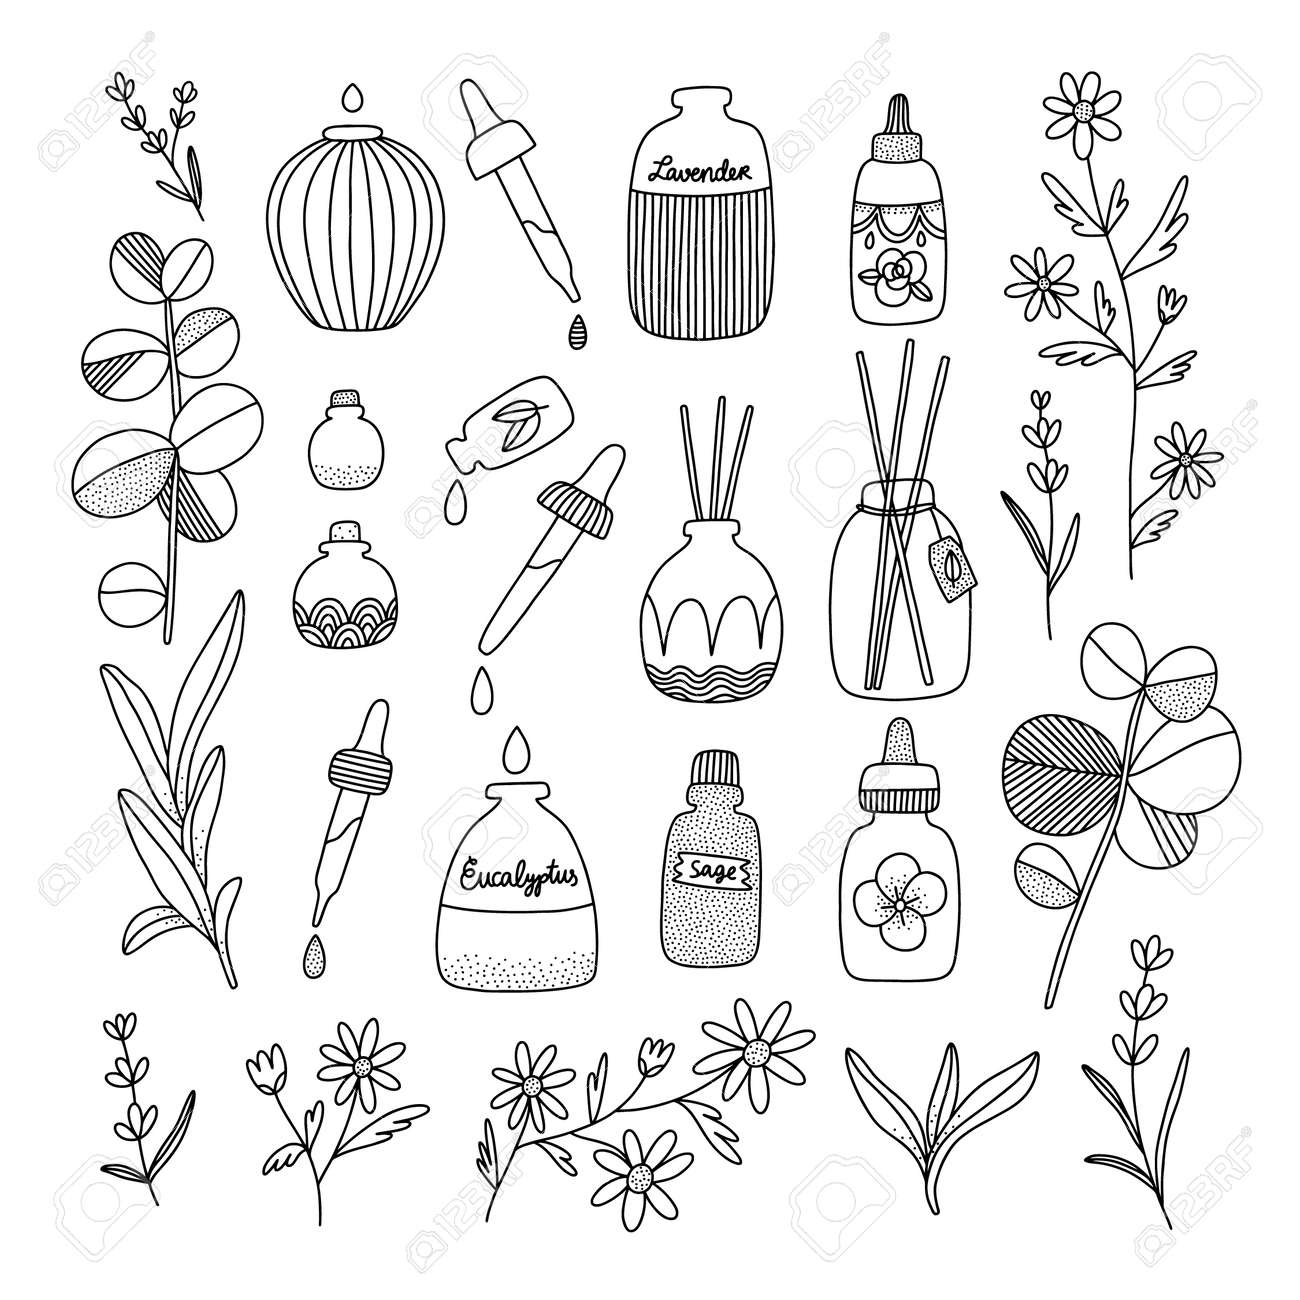 Aromatherapy aesthetic with different oil bottles and plants, vector illustrations set - 164064513